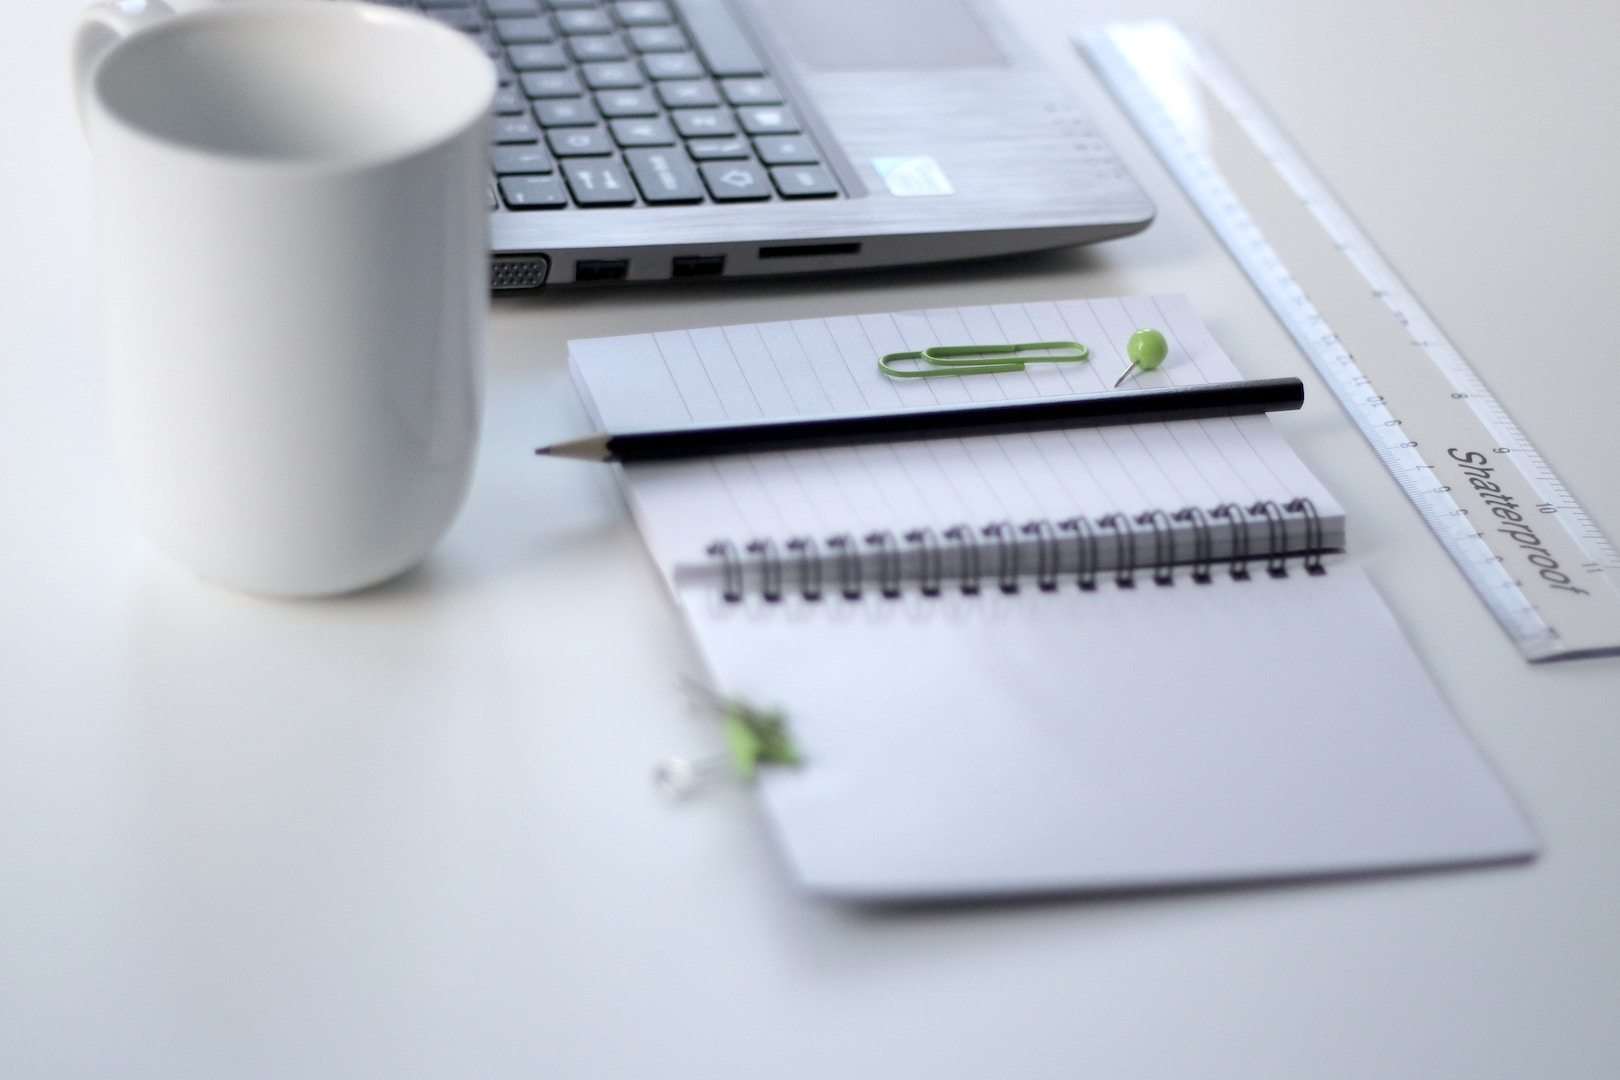 A coffee cup, notebook, ruler and computer are part of a podcast studio